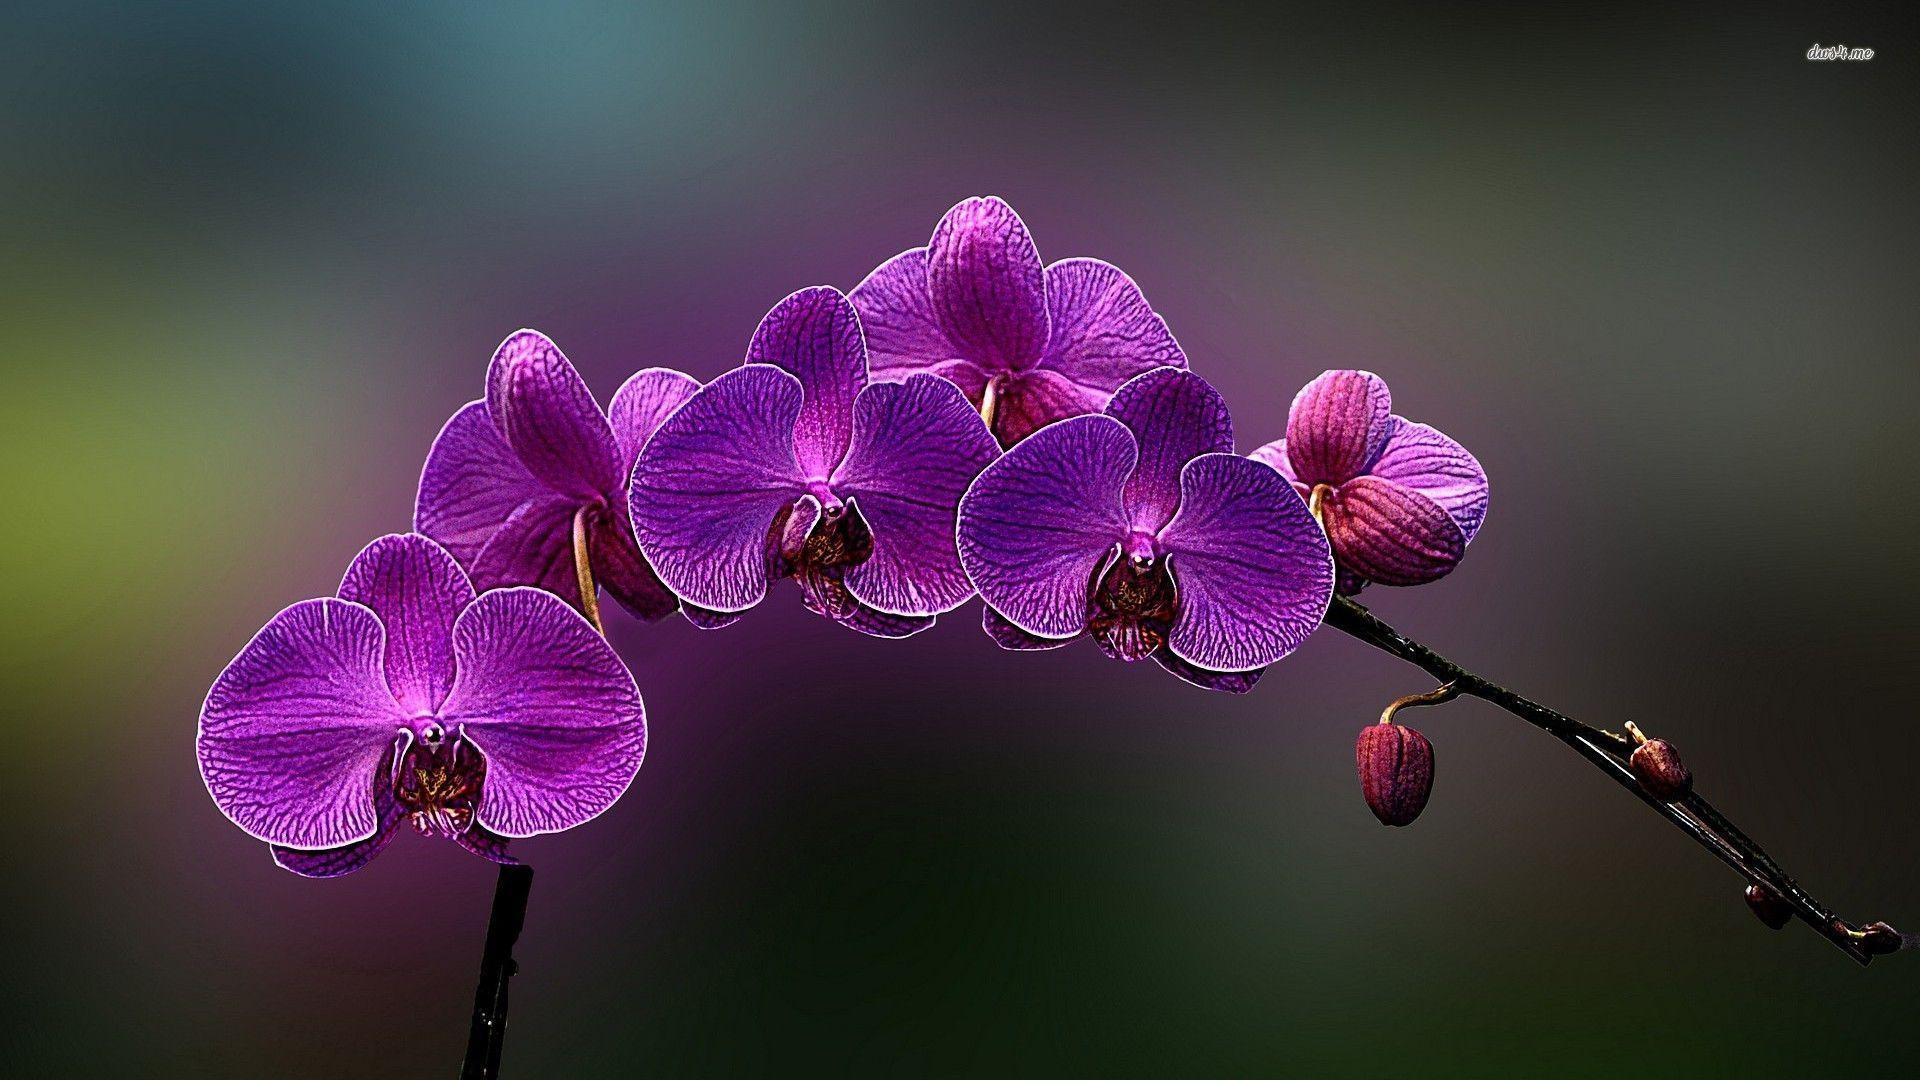 orchid wallpapers backgrounds images - photo #21